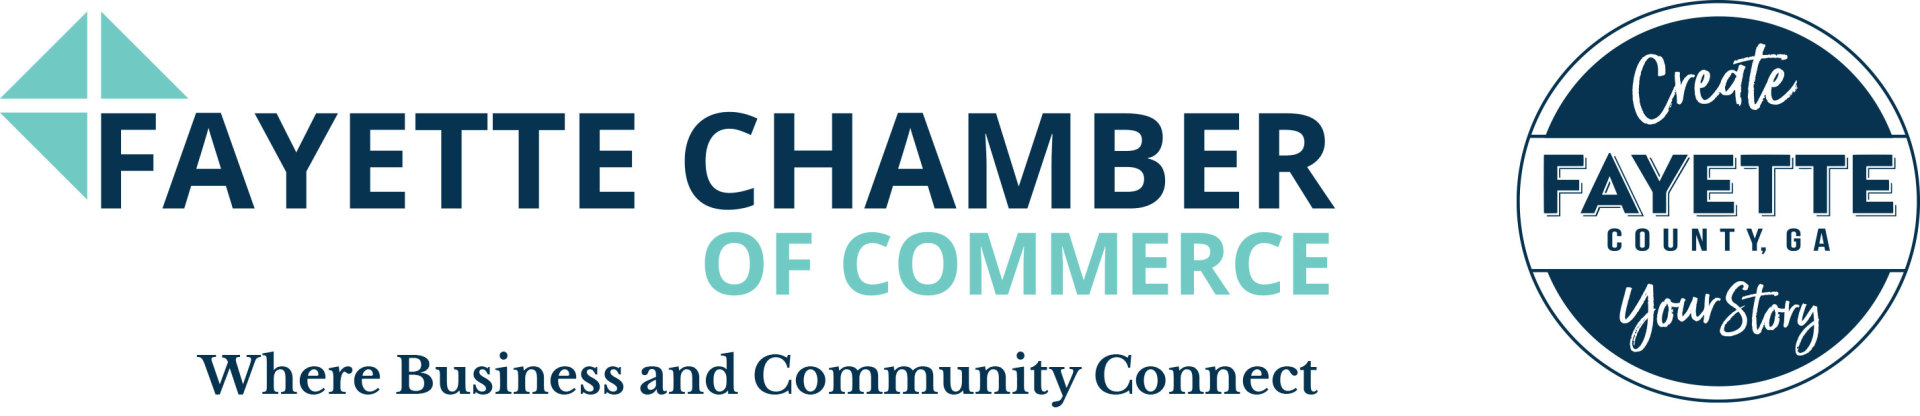 Chamber Resources Fayette Chamber Of Commerce Ga